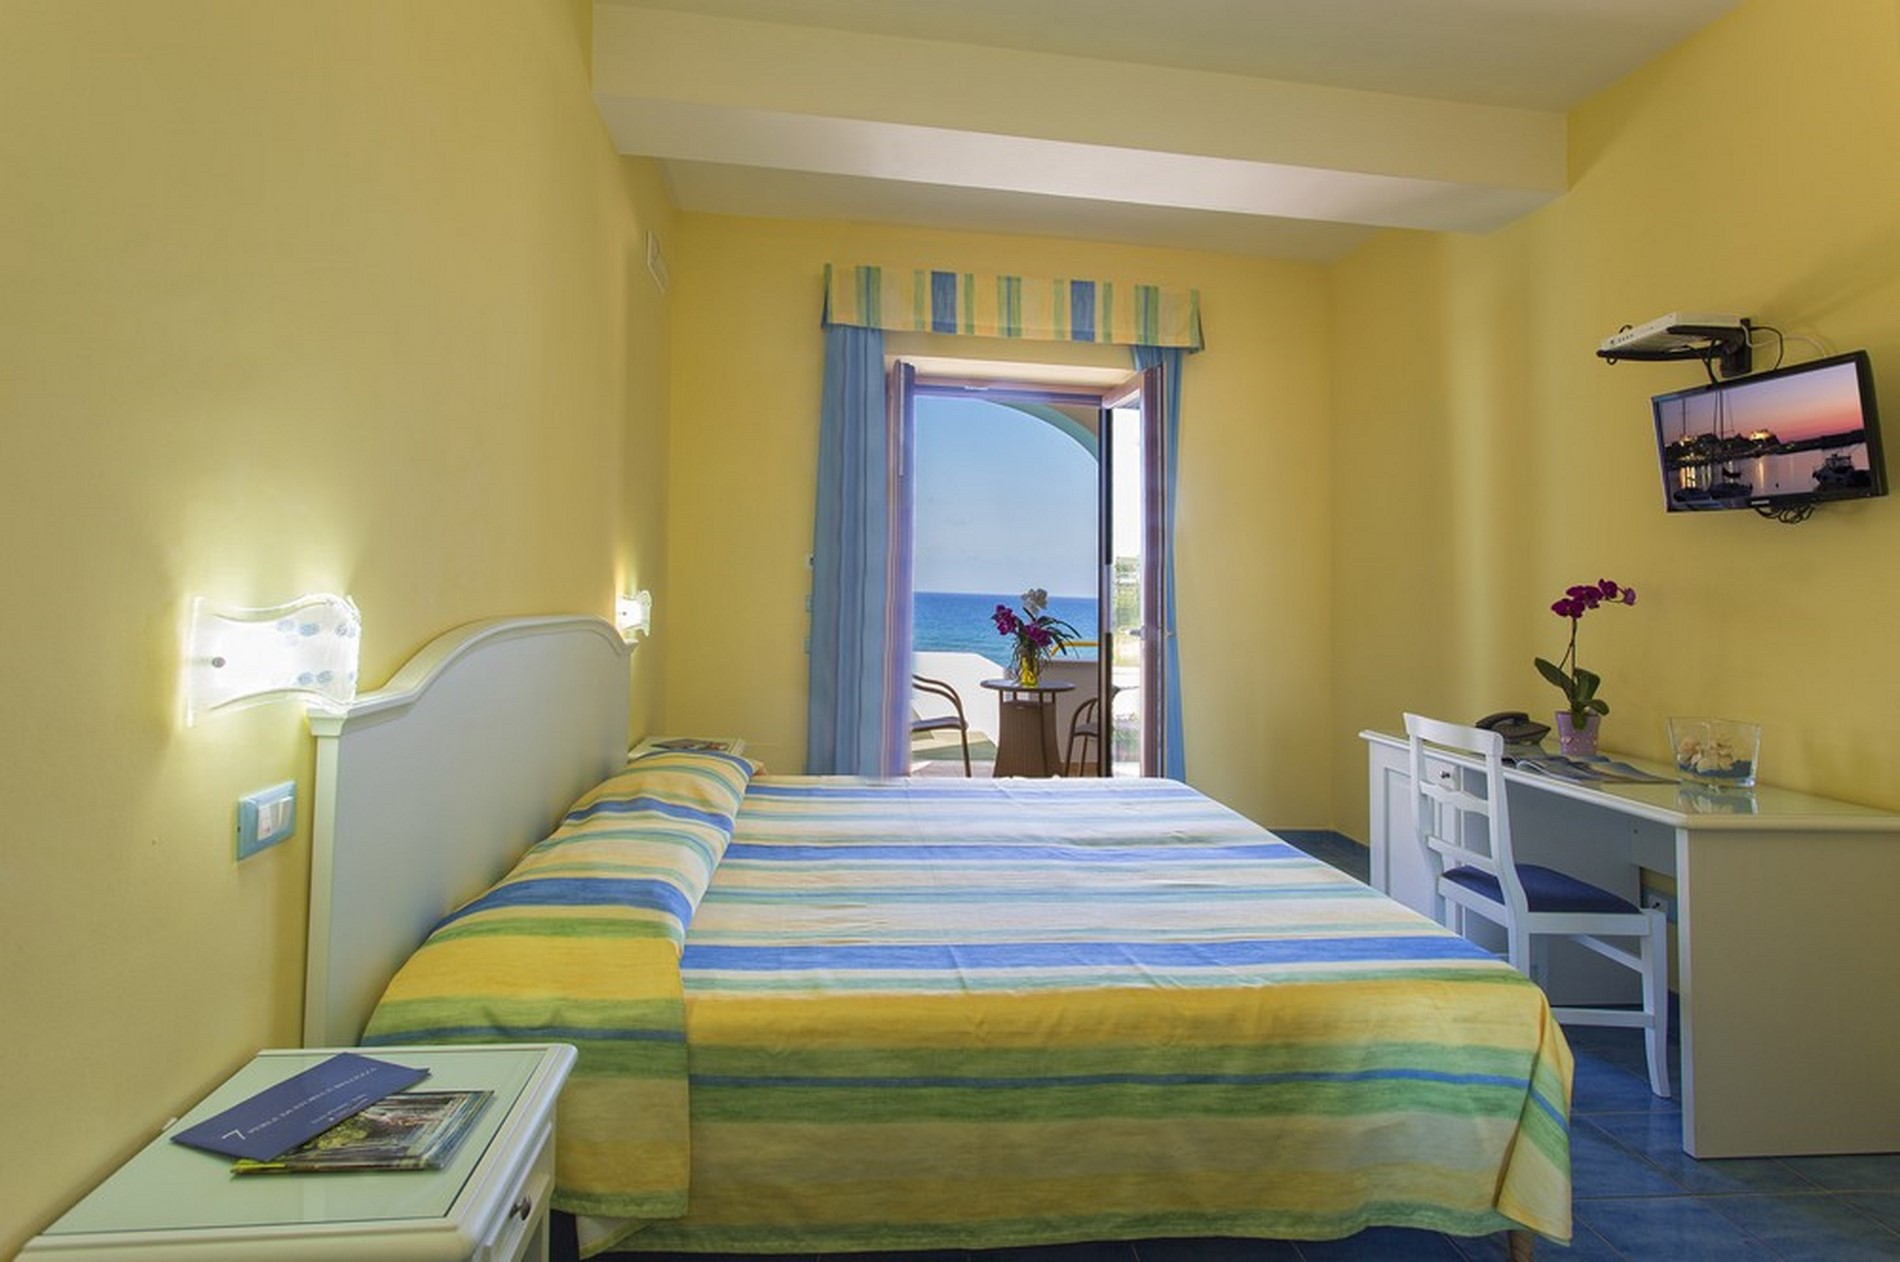 http://www.hotelcavadellisola.it/wp-content/uploads/2016/02/91A1060-Copia-1.jpg